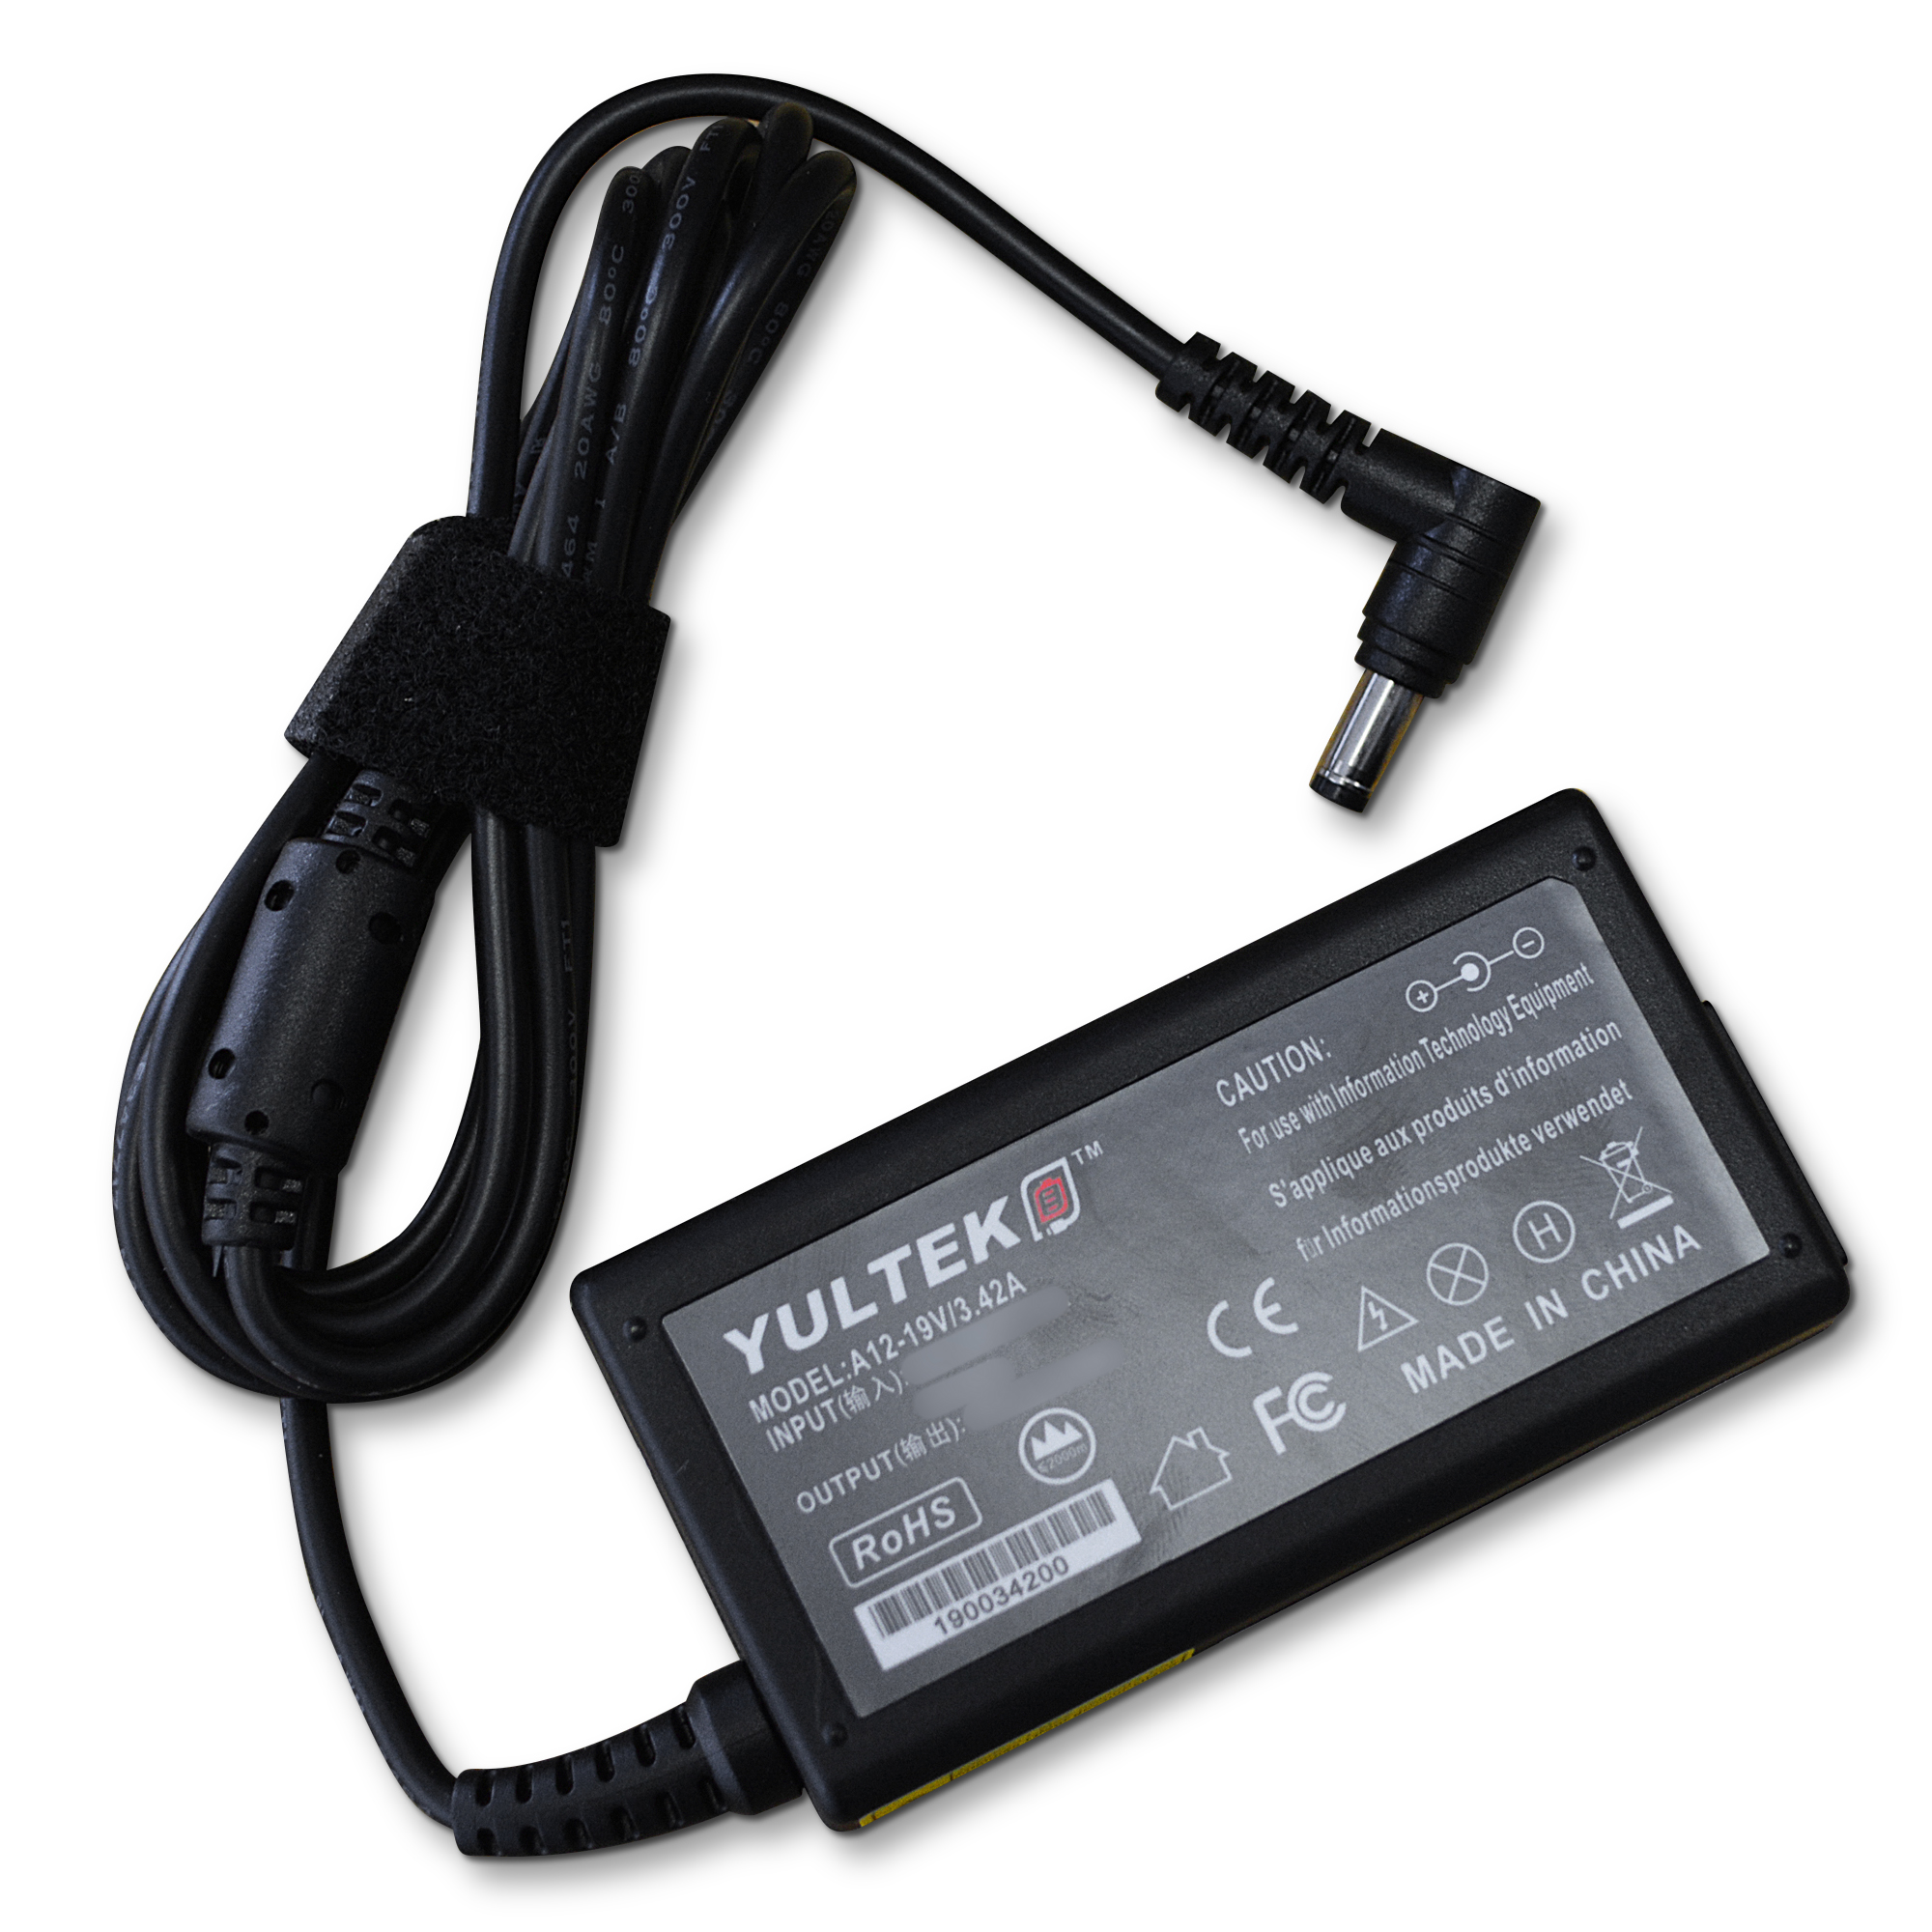 Toshiba Satellite L10-107 Laptop Charger